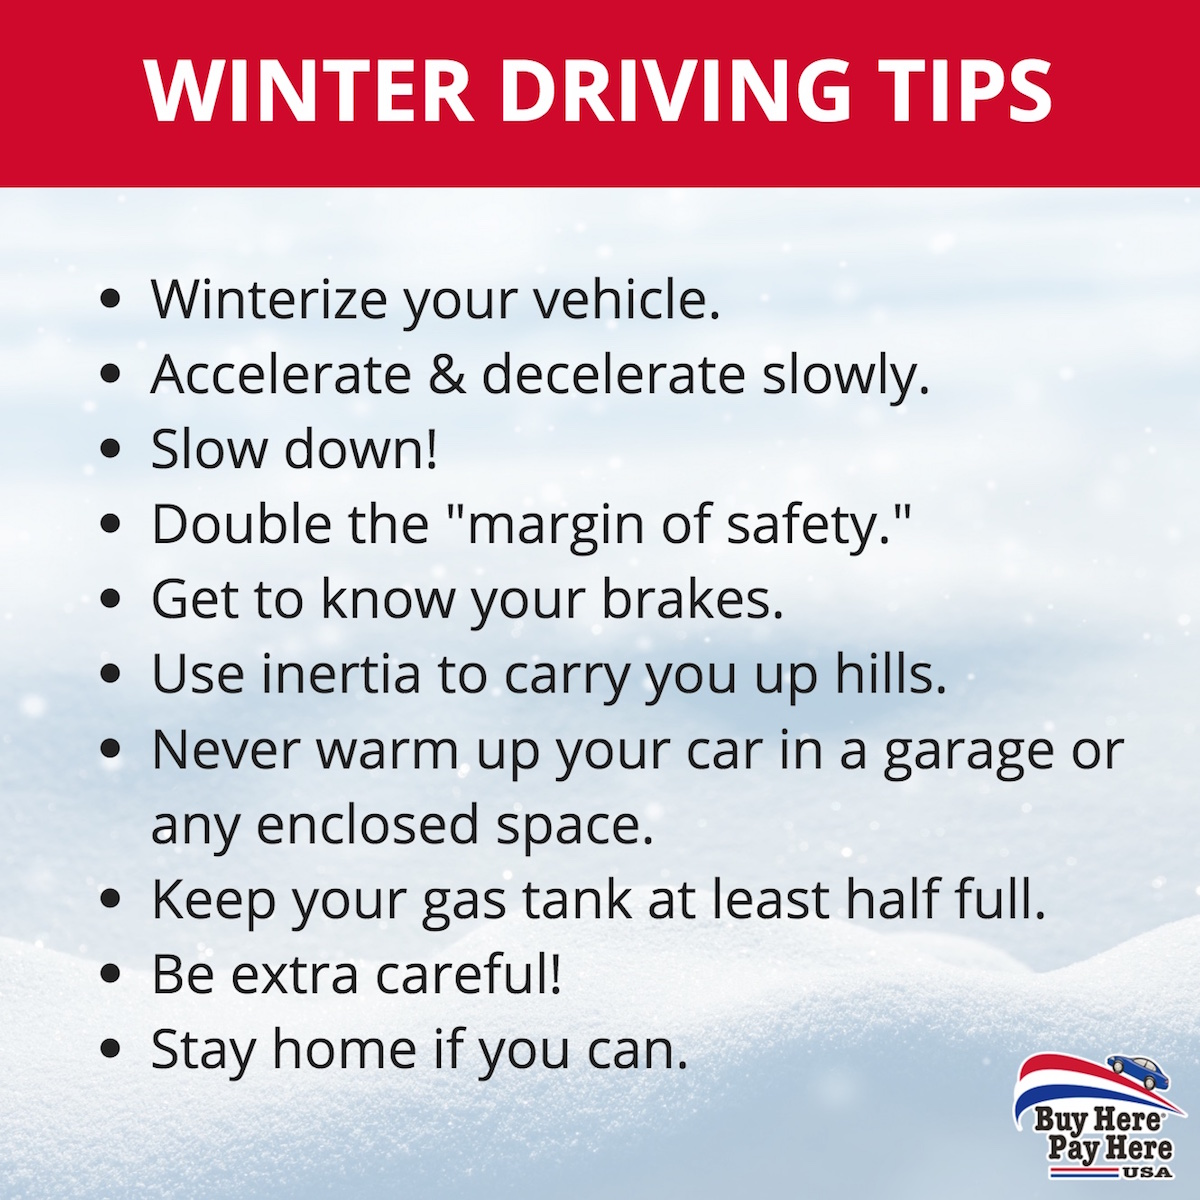 Winter Driving Tips - Buy Here Pay Here USA